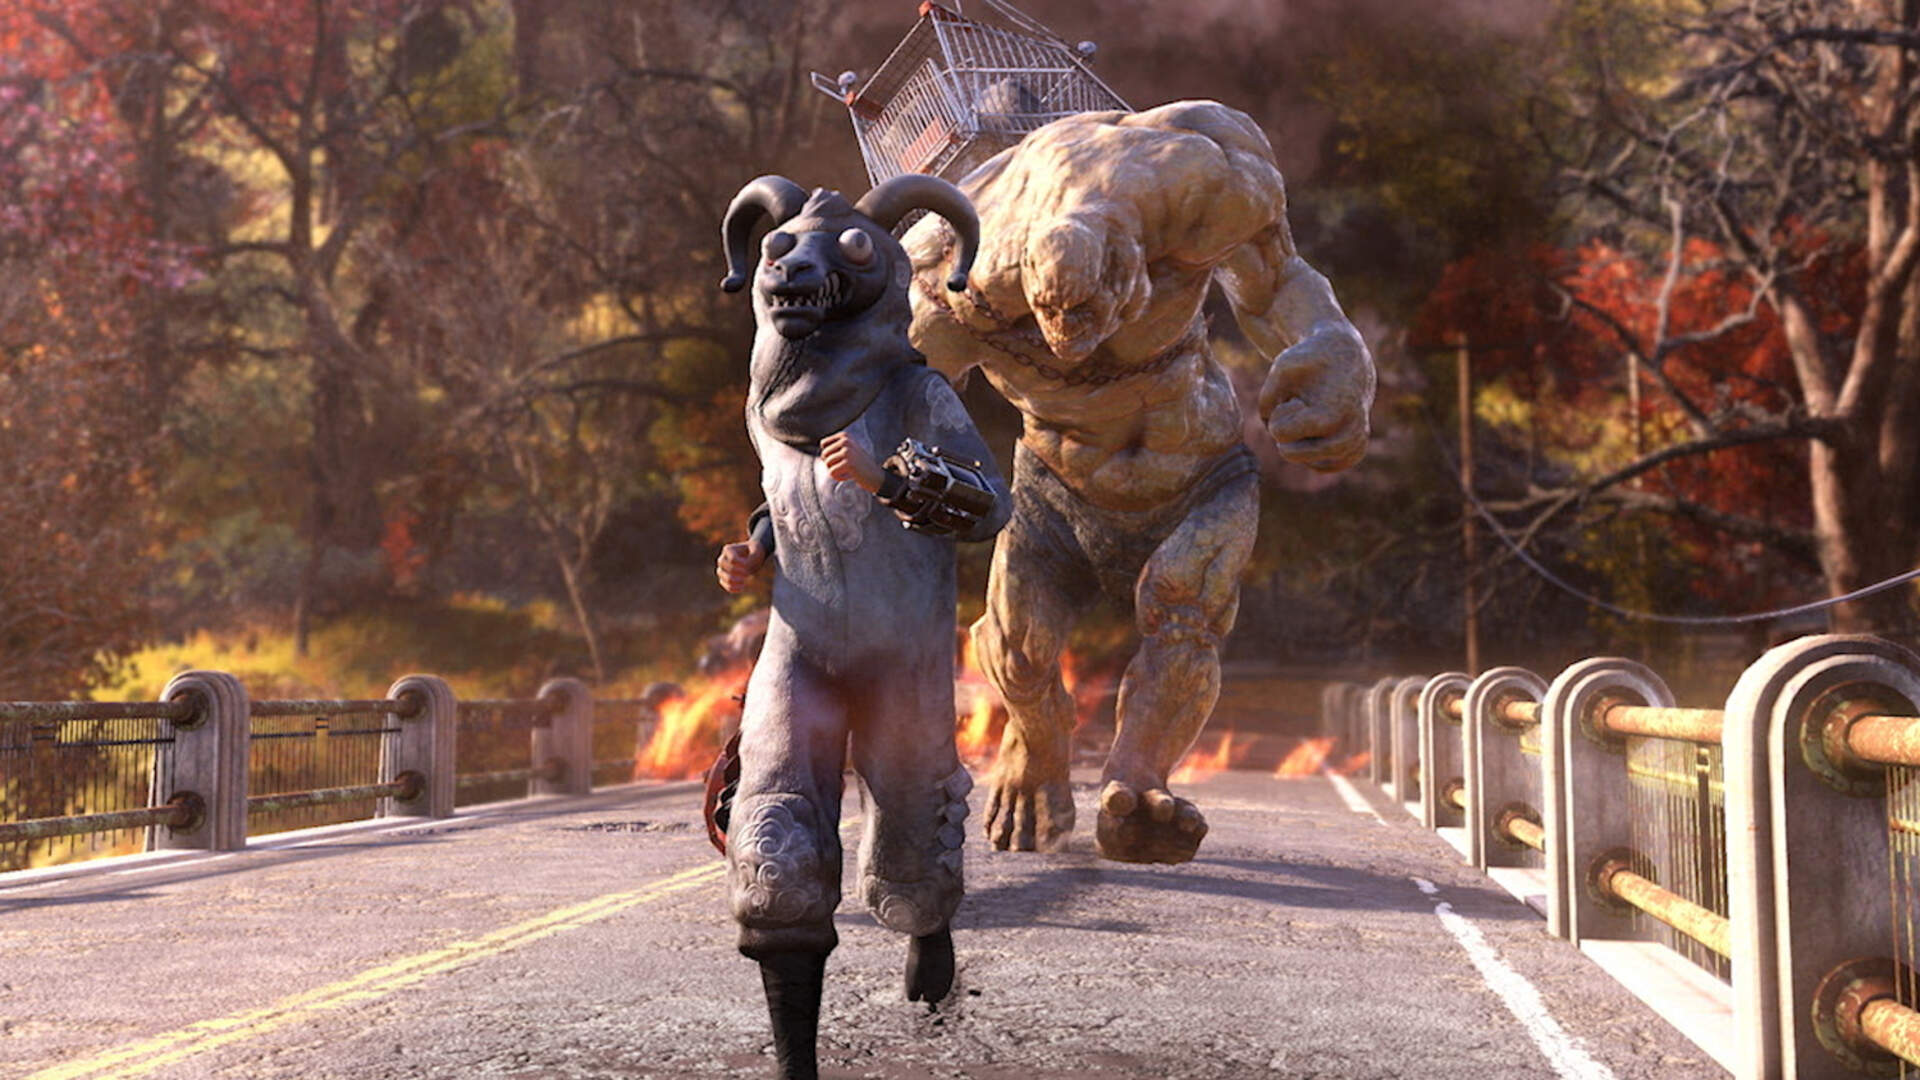 Fallout 76's Wild Appalachia Kicks Off With New Quests, New Crafting System